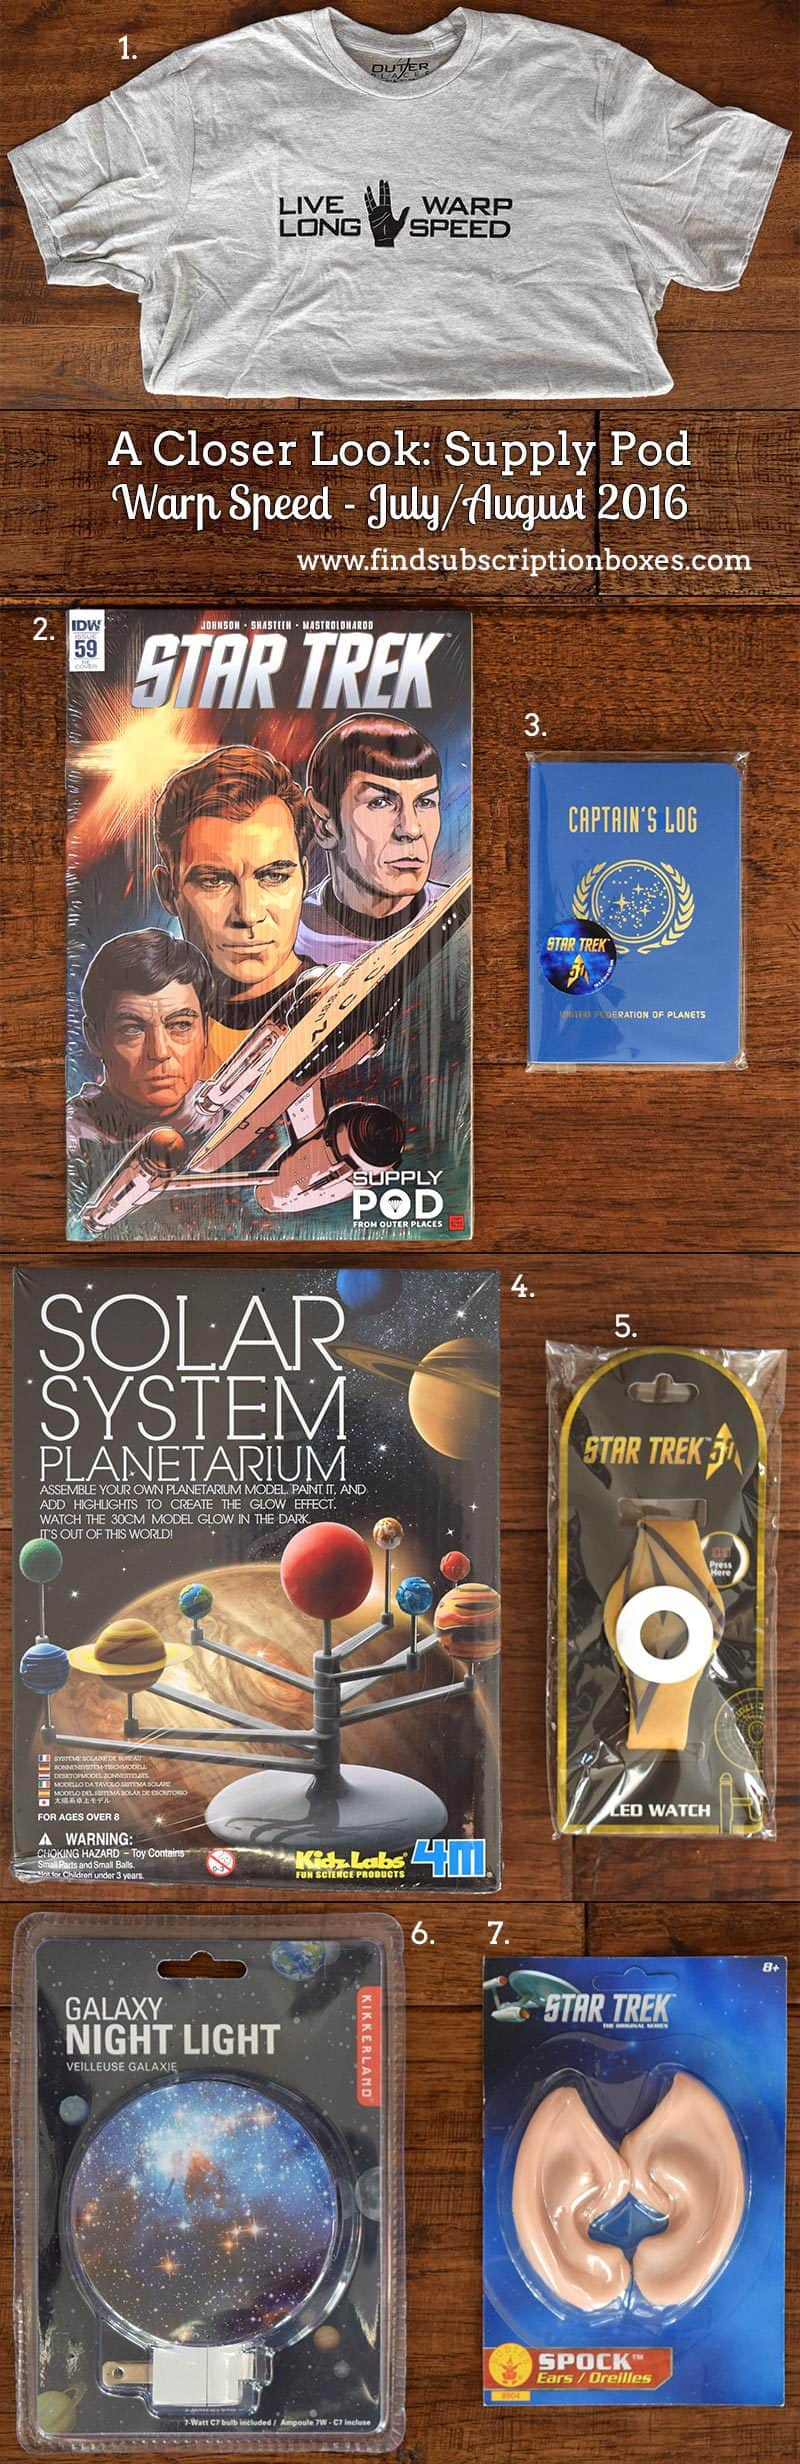 Supply Pod August 2016 Review – Warp Speed - Inside the Box